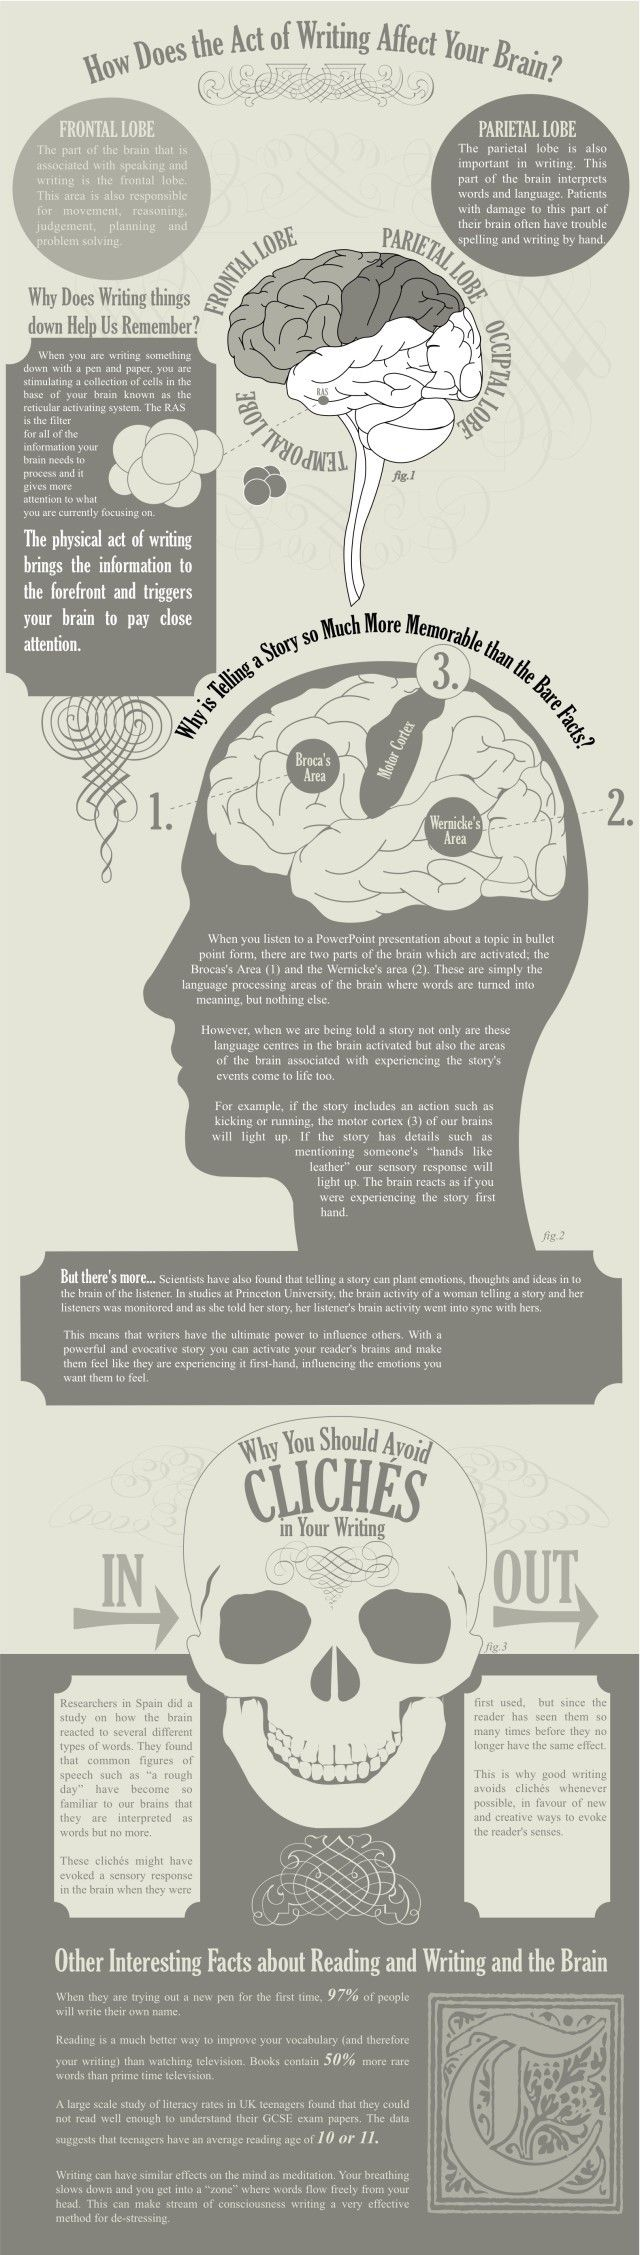 How Does Writing Affect Your Brain? [infographic]